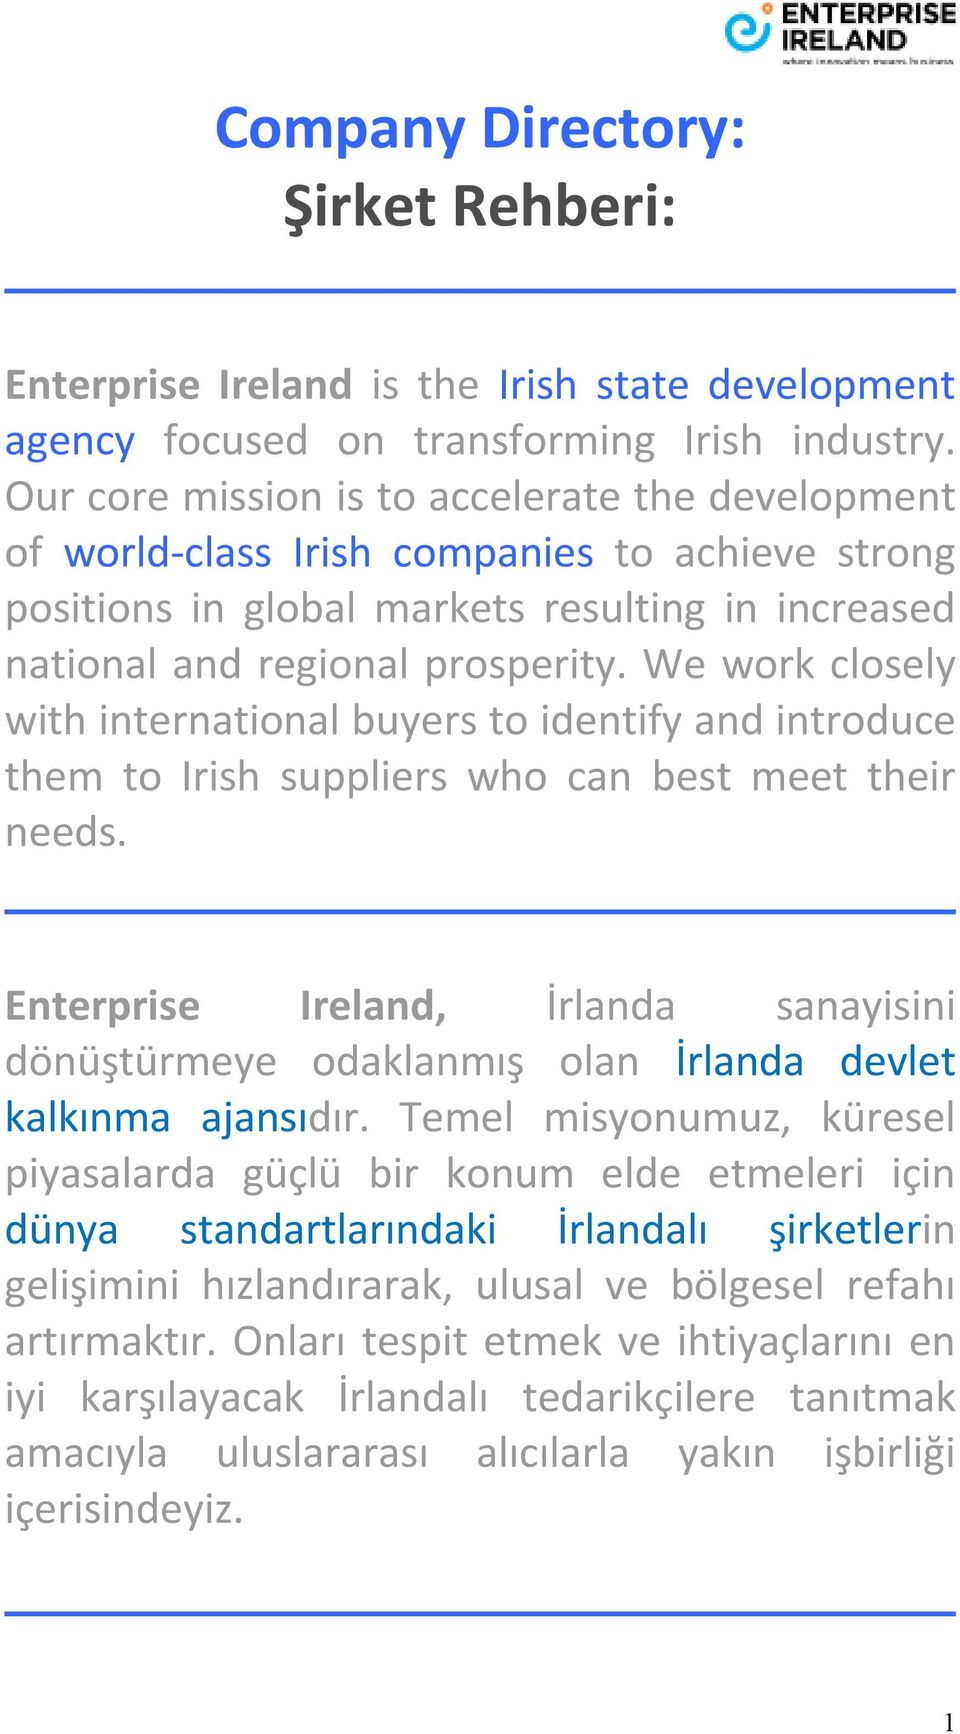 We work closely with international buyers to identify and introduce them to Irish suppliers who can best meet their needs.